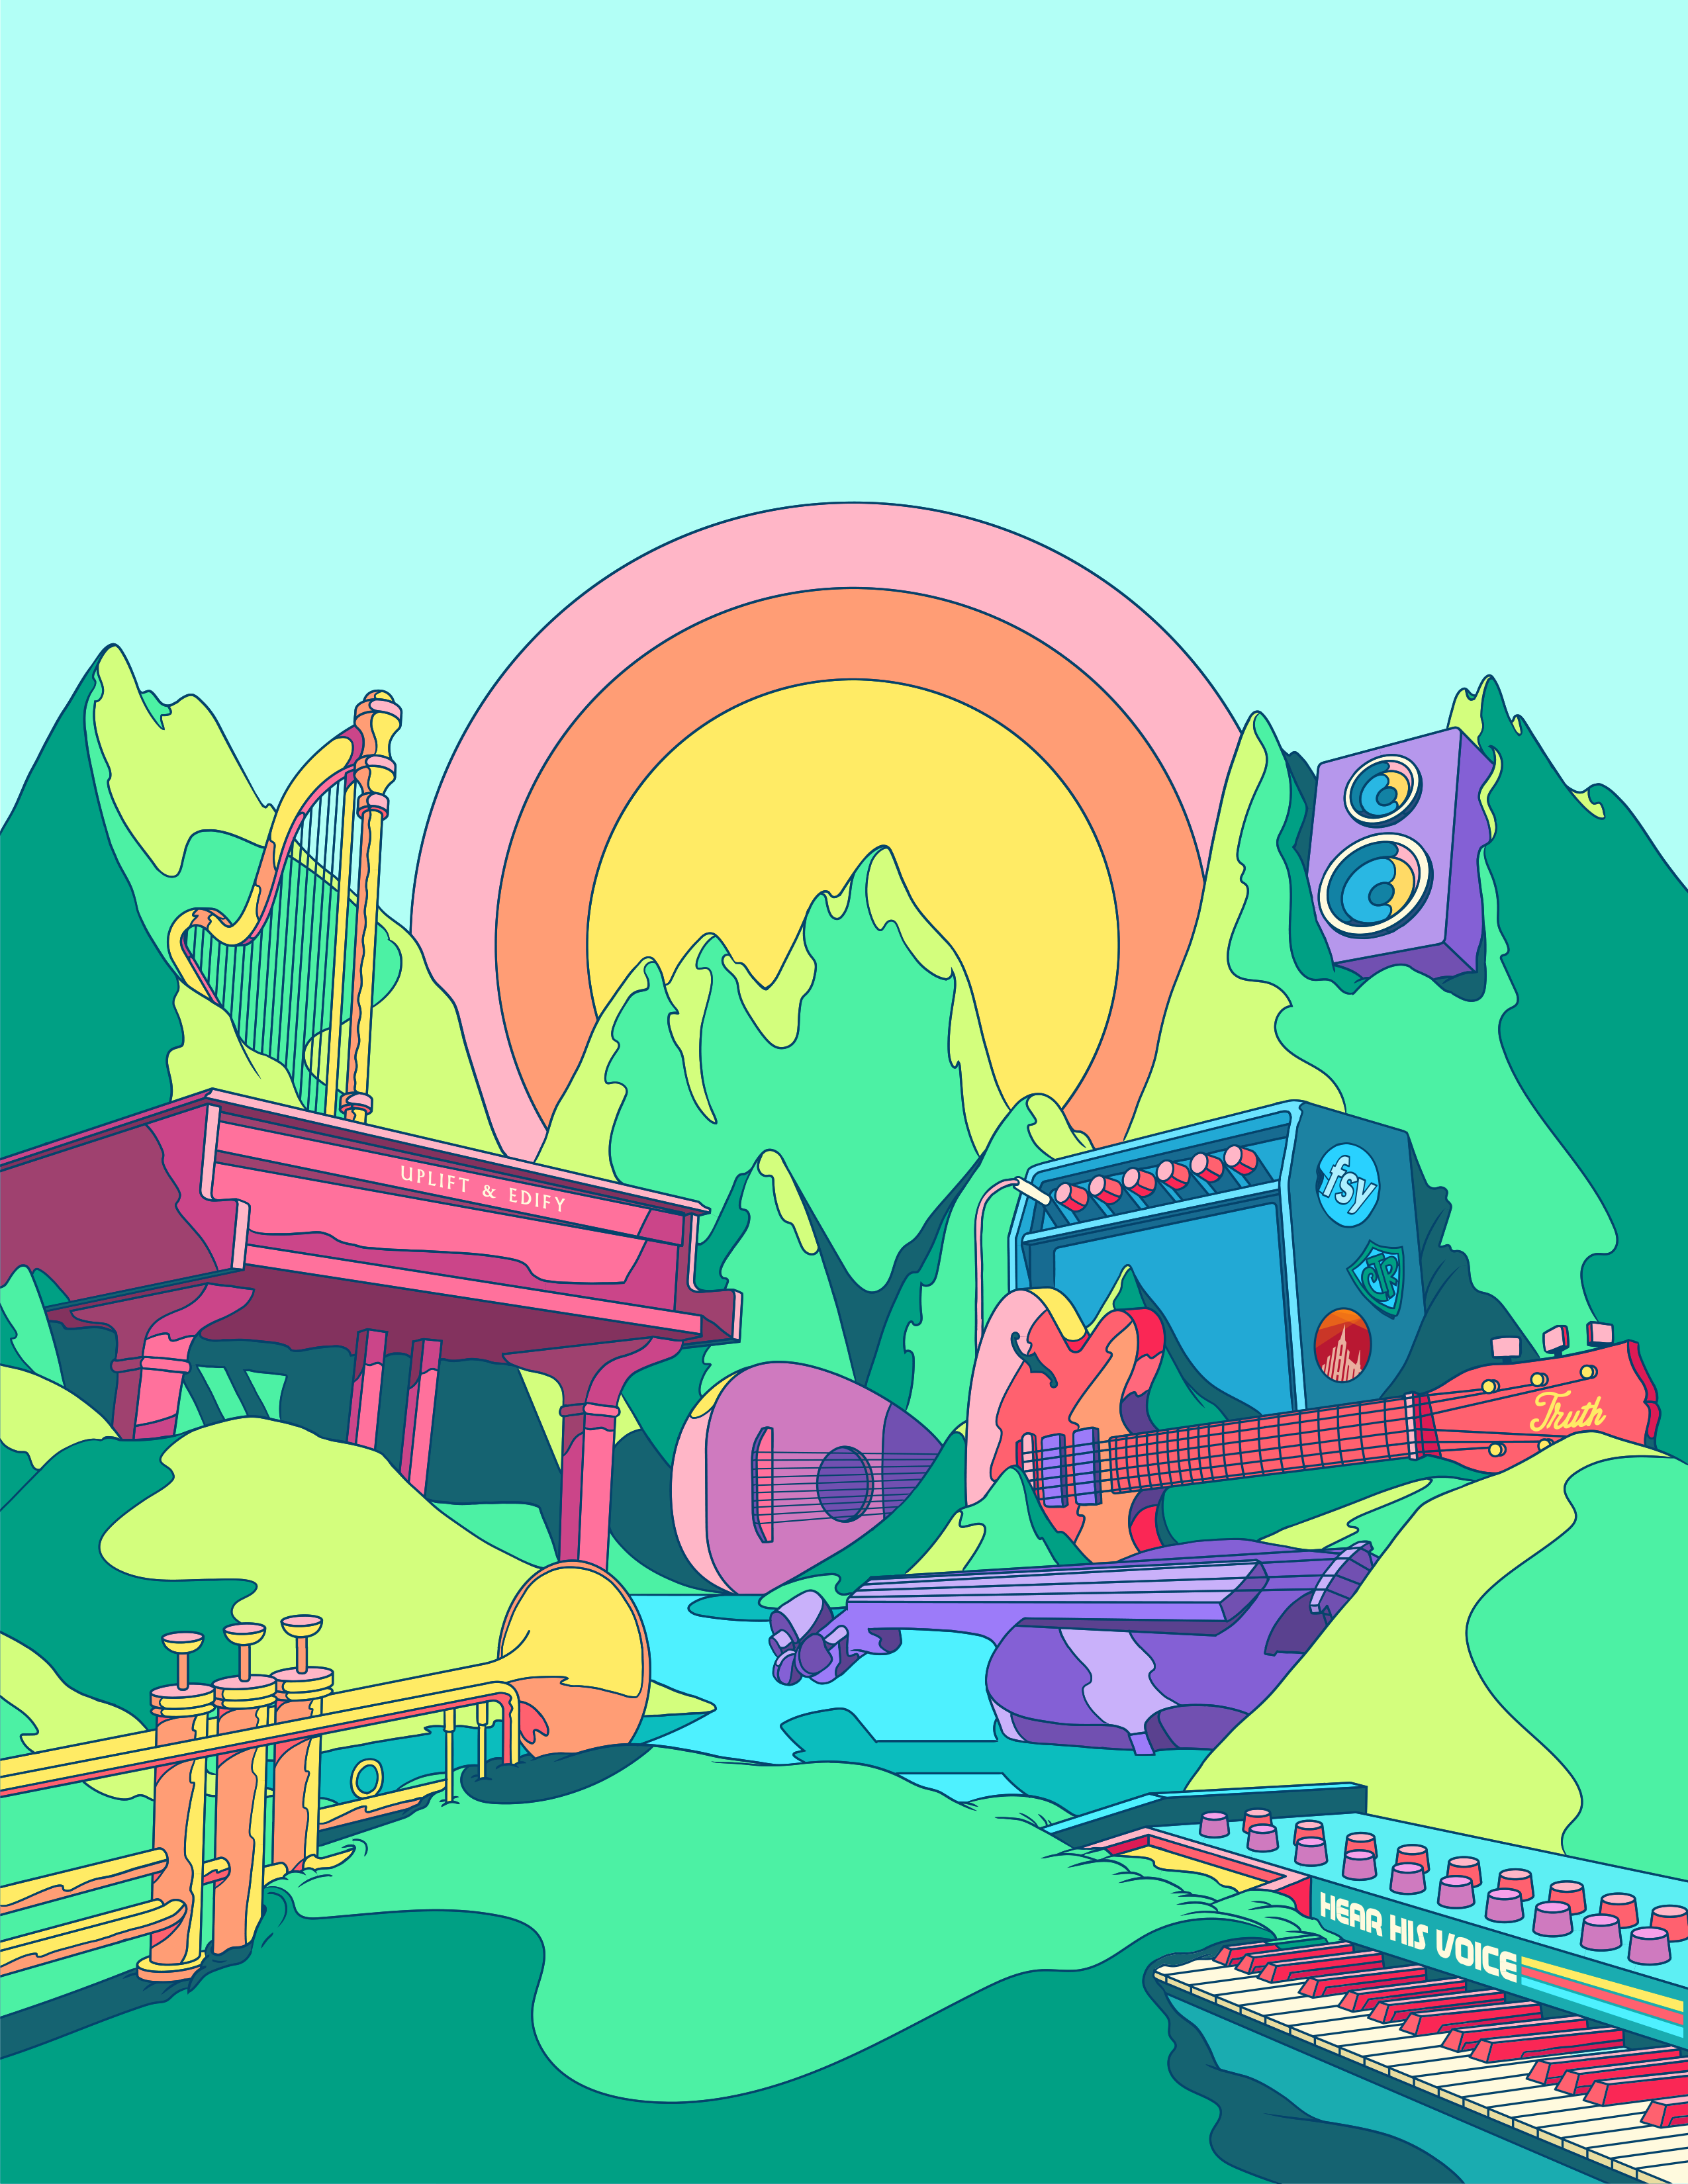 July youth event poster depicts colorful musical instruments.